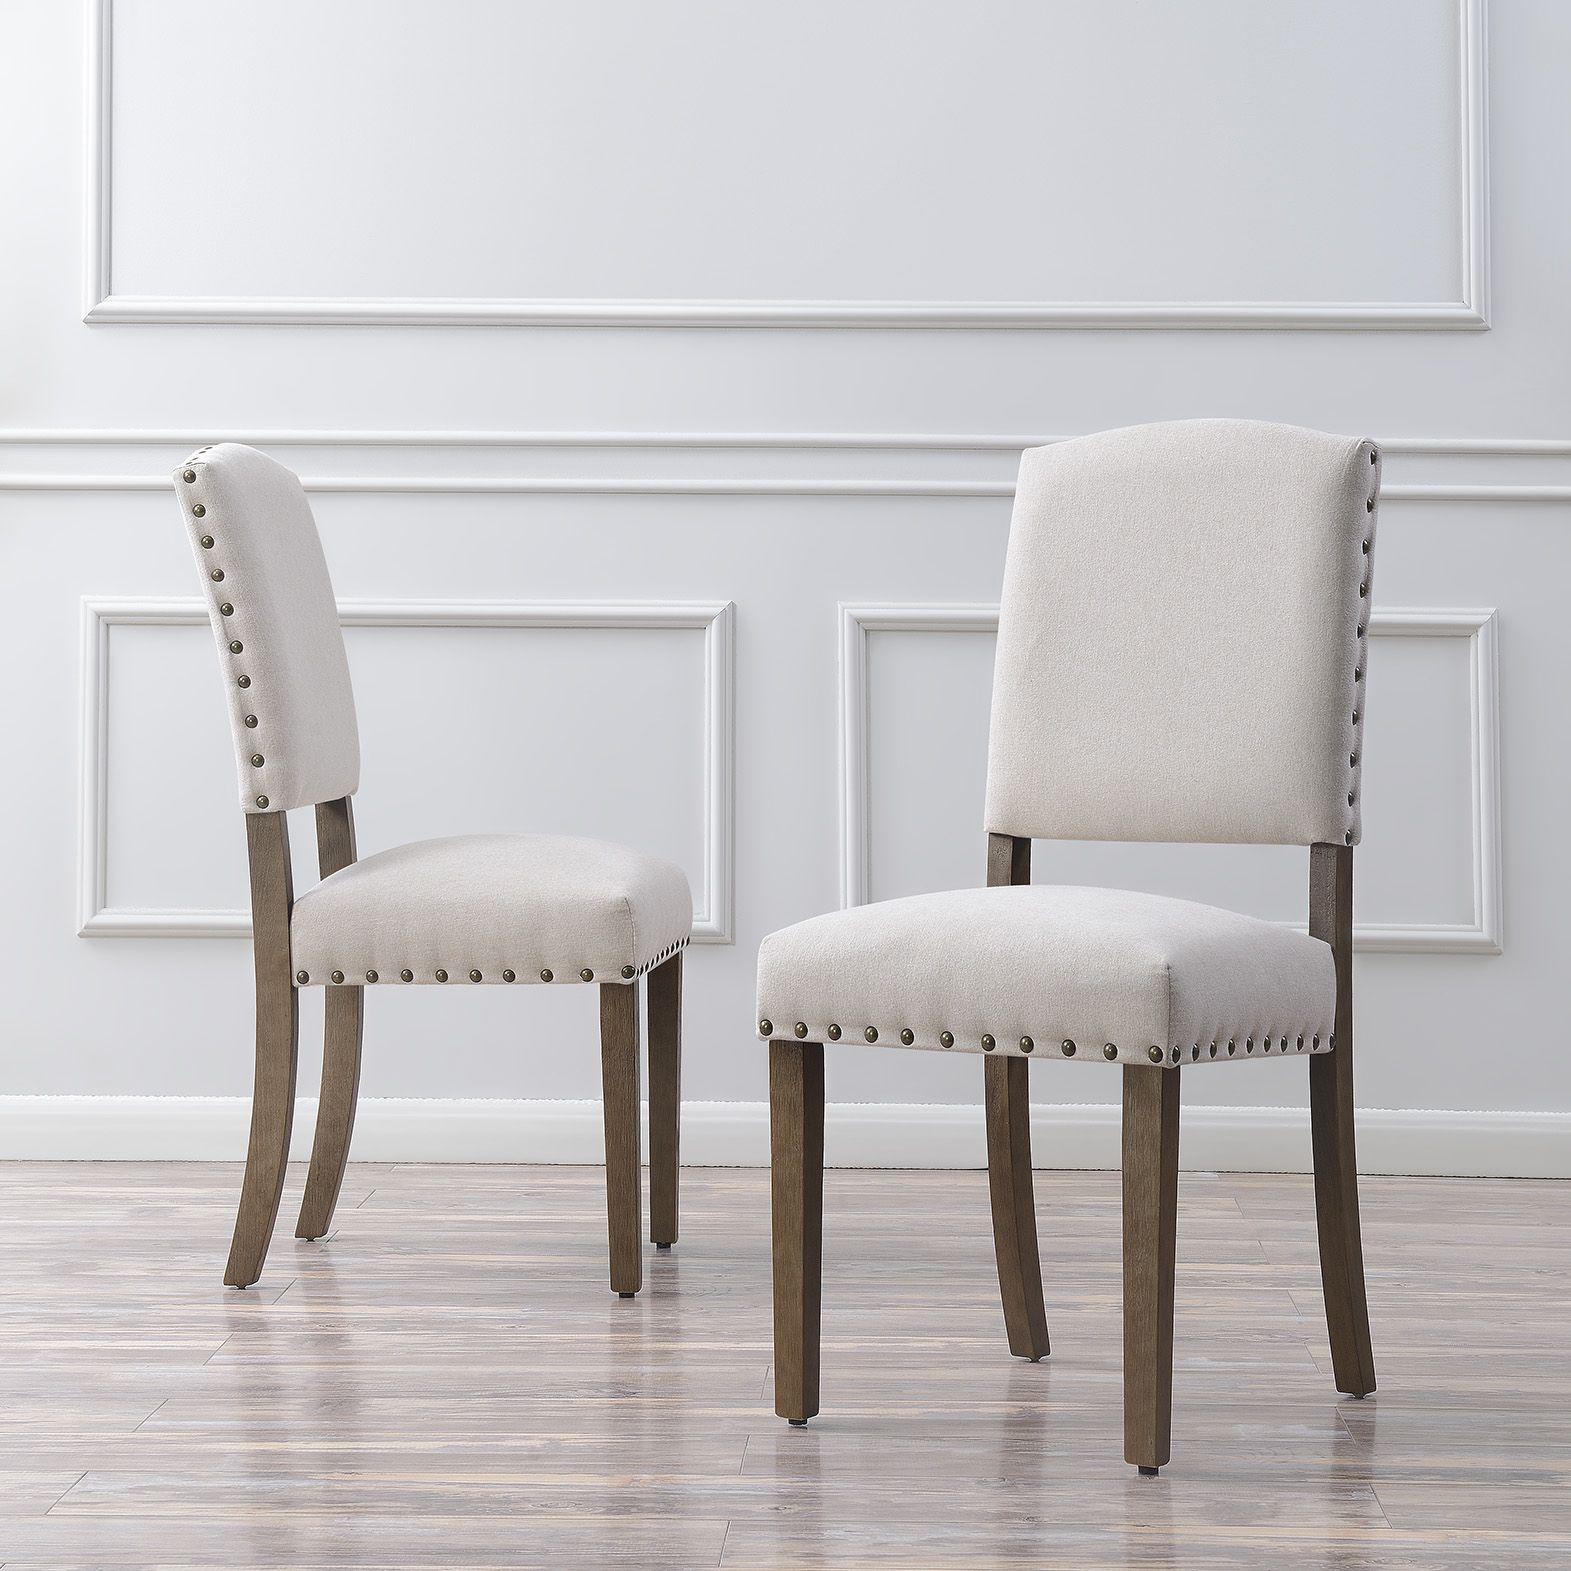 Belleze set of 2 modern chair dining seat parsons